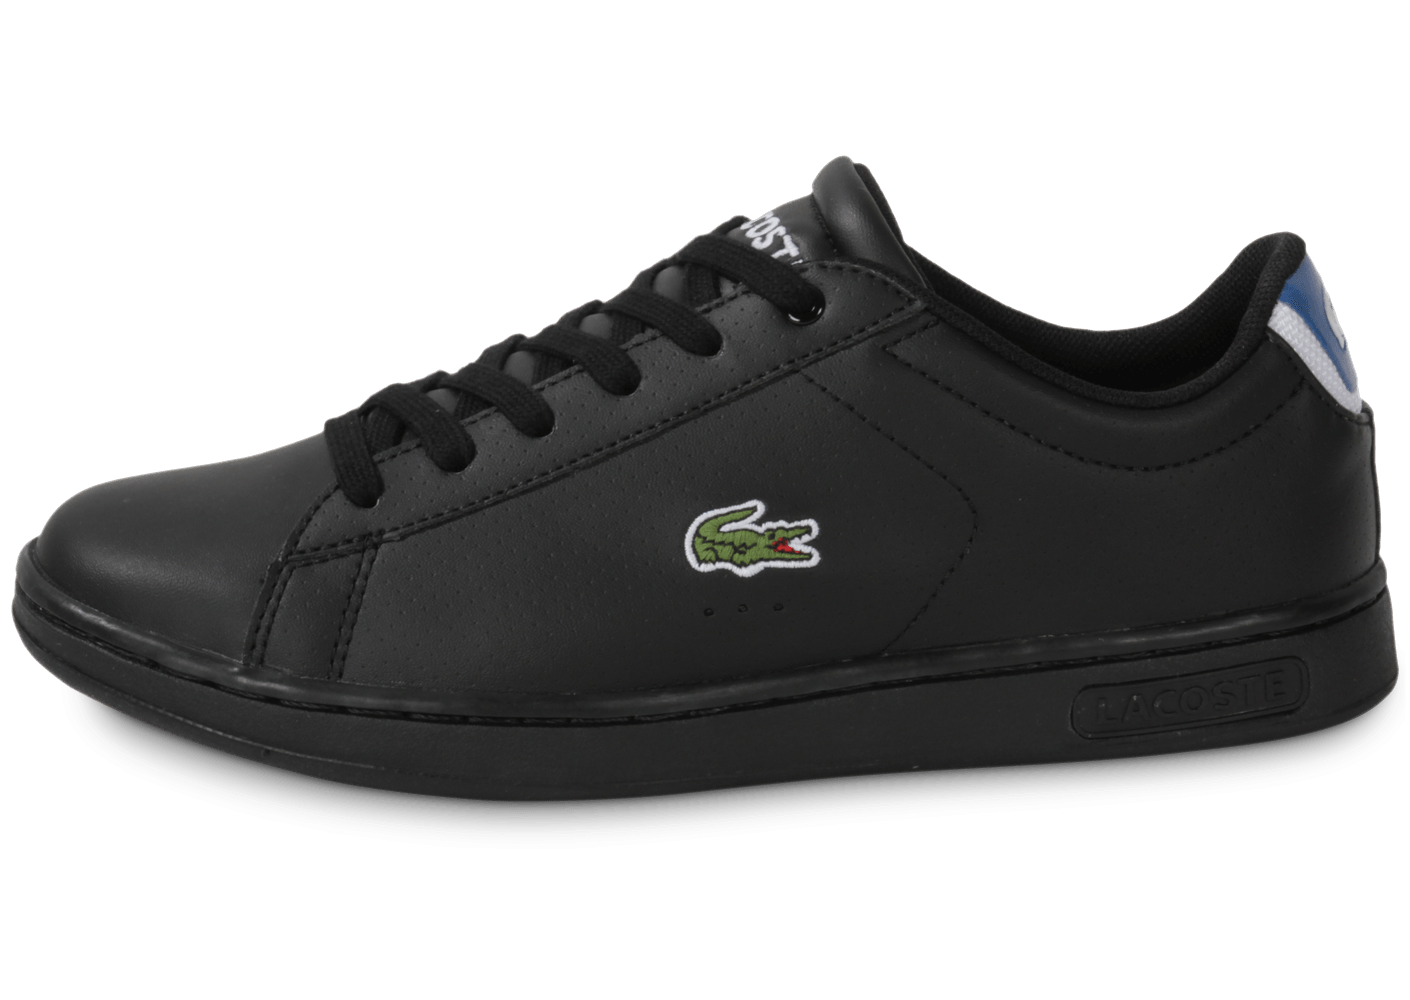 lacoste carnaby per junior noire chaussures chaussures chausport. Black Bedroom Furniture Sets. Home Design Ideas